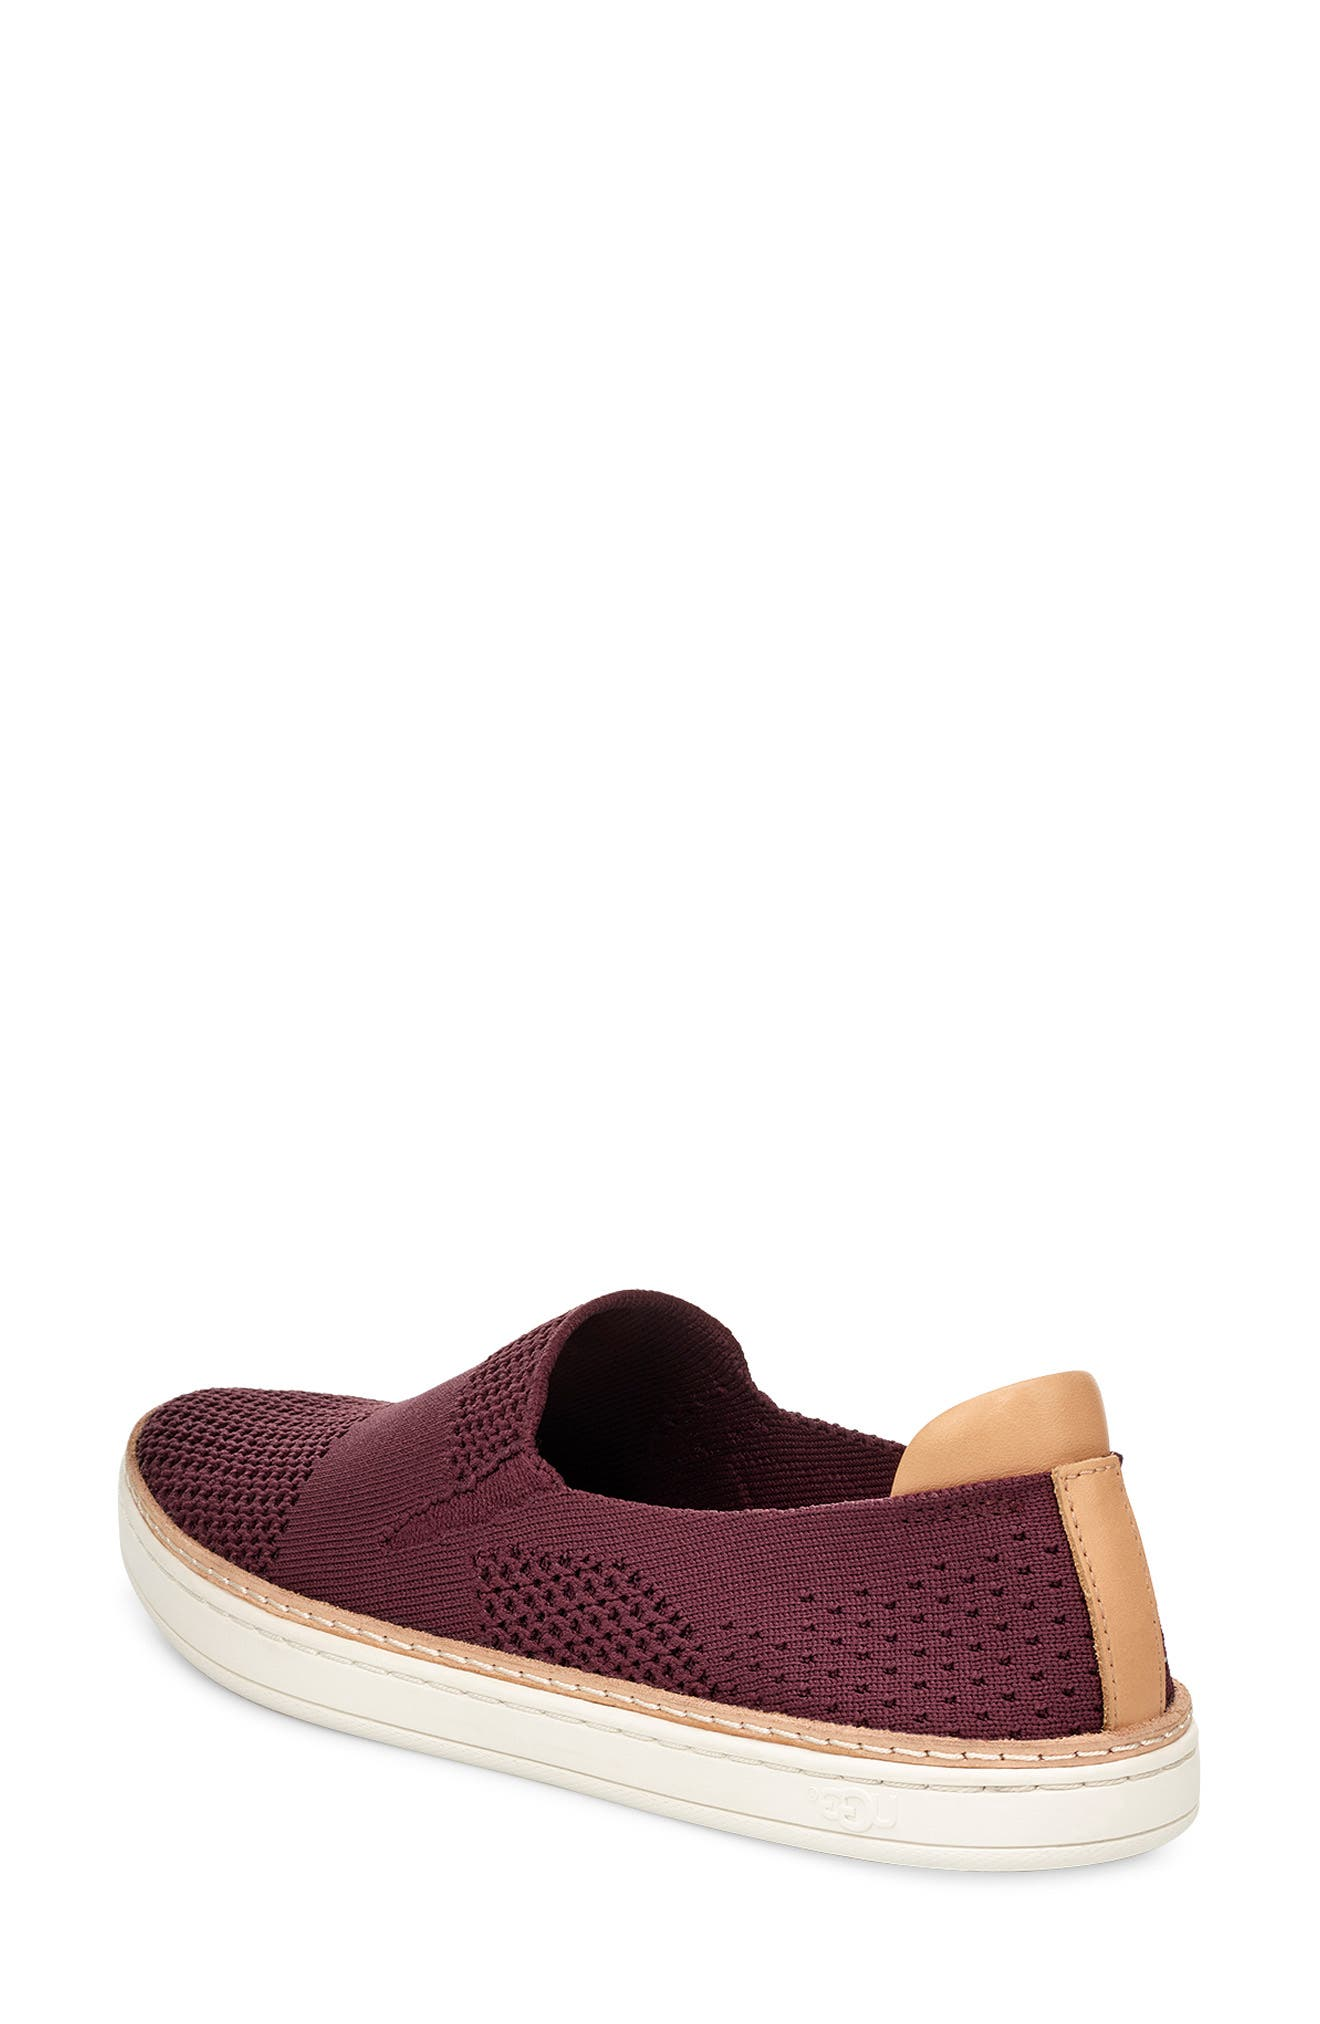 UGG   Sammy Leather Mixed Media Sneaker